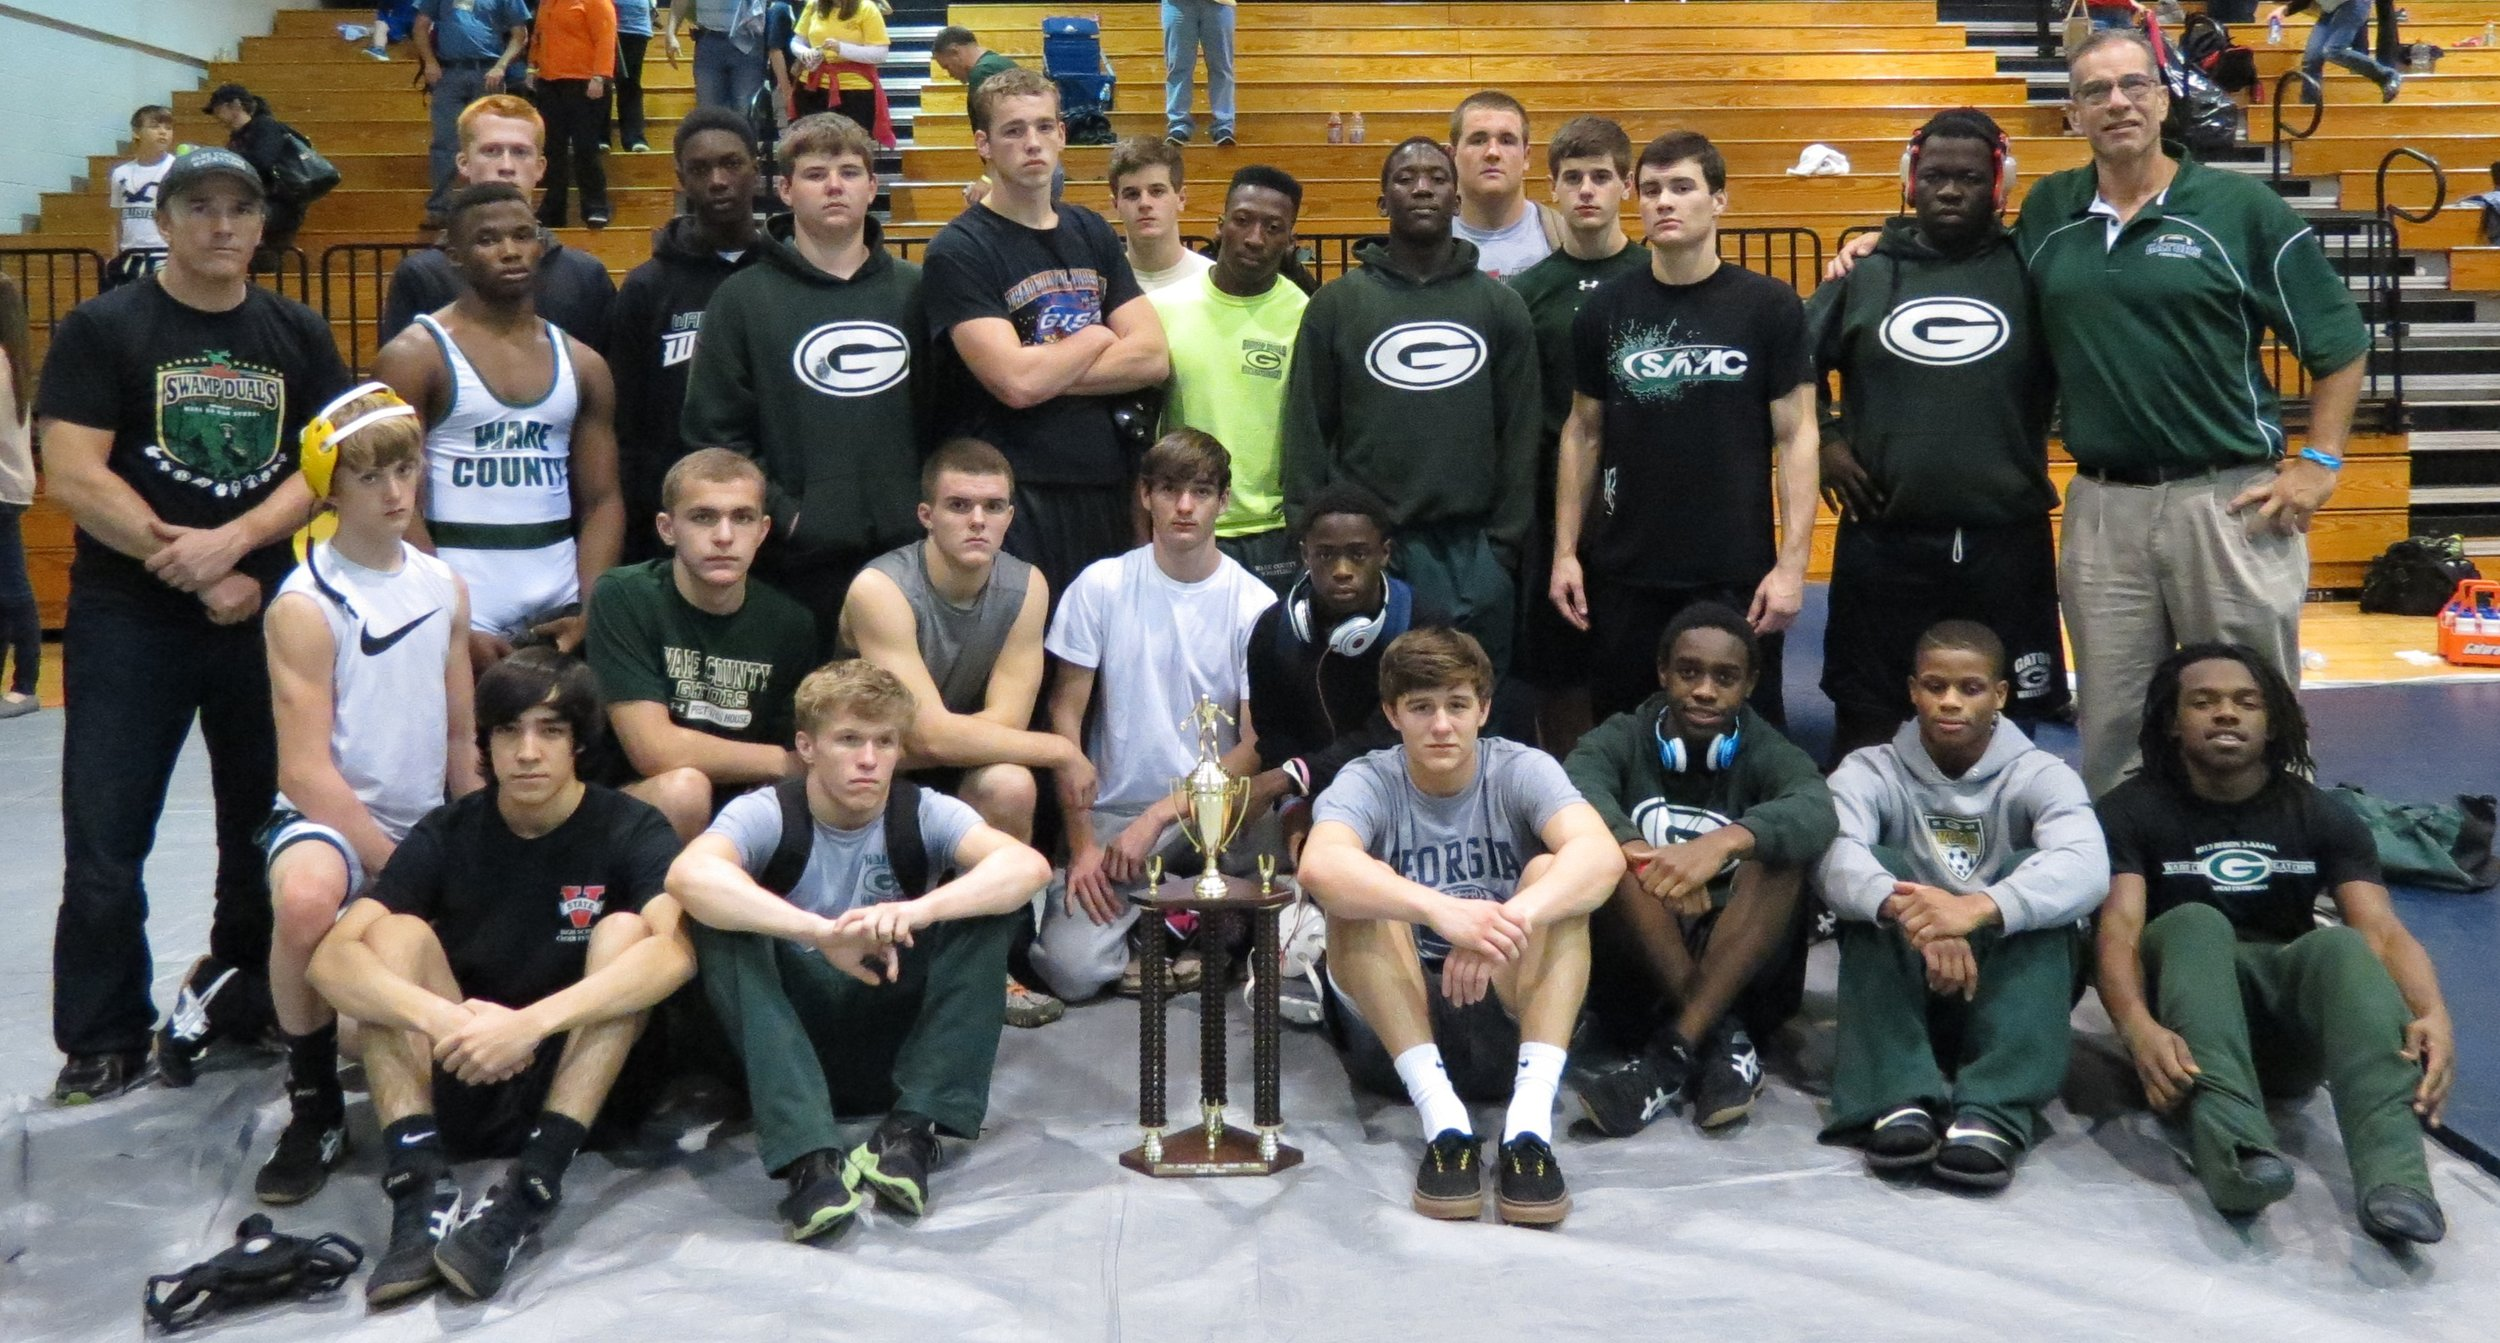 Gators go 8-1 to take 2nd place in the Jeff Davis Yellow Jacket Duals  Dec 6 & 7, 2013